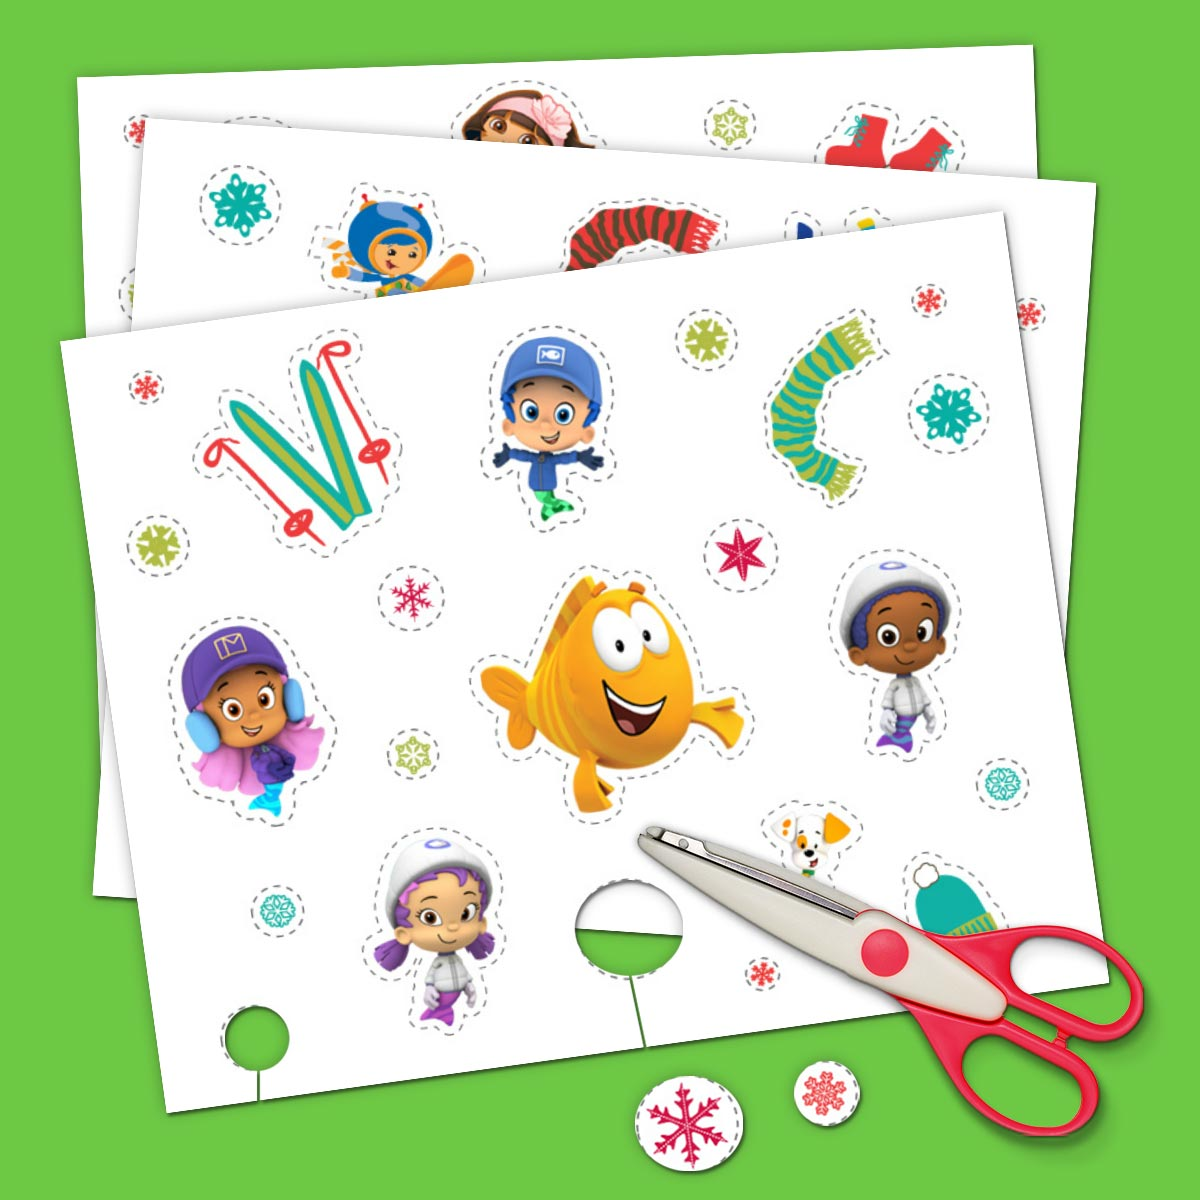 Nick Jr. holiday stickers